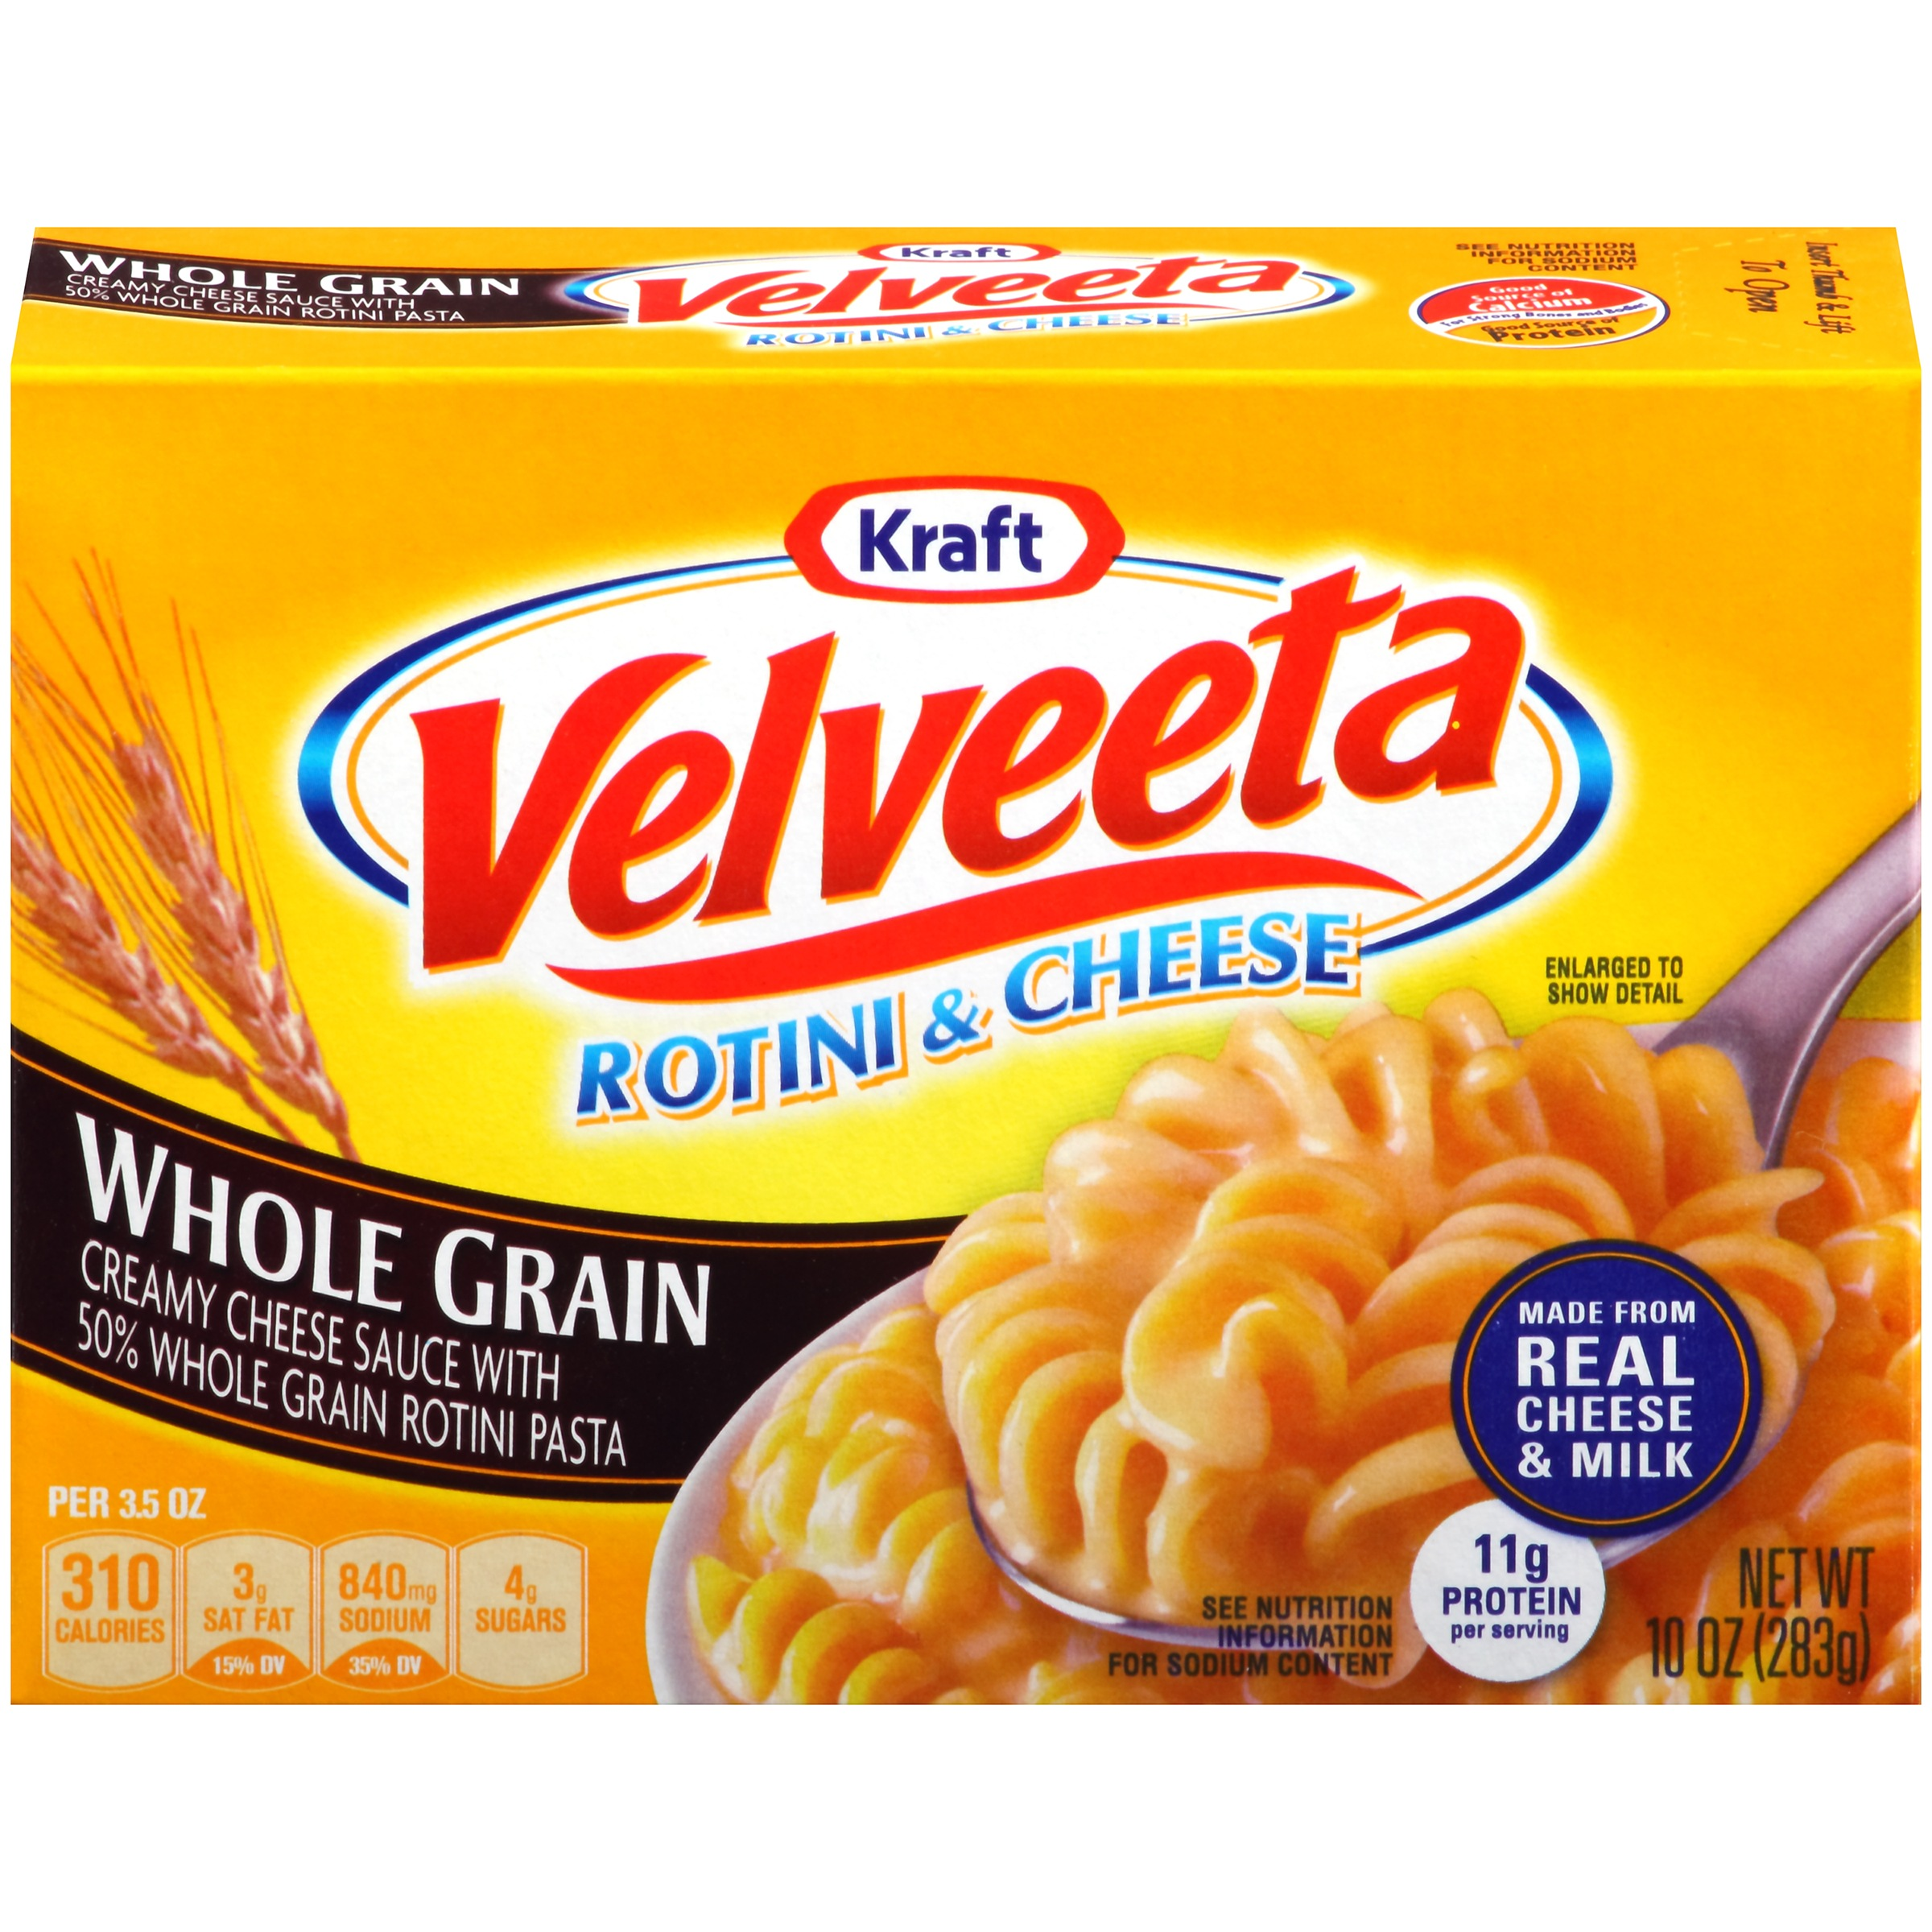 Kraft Velveeta Rotini & Cheese Whole Grain, 10 OZ (283g ...